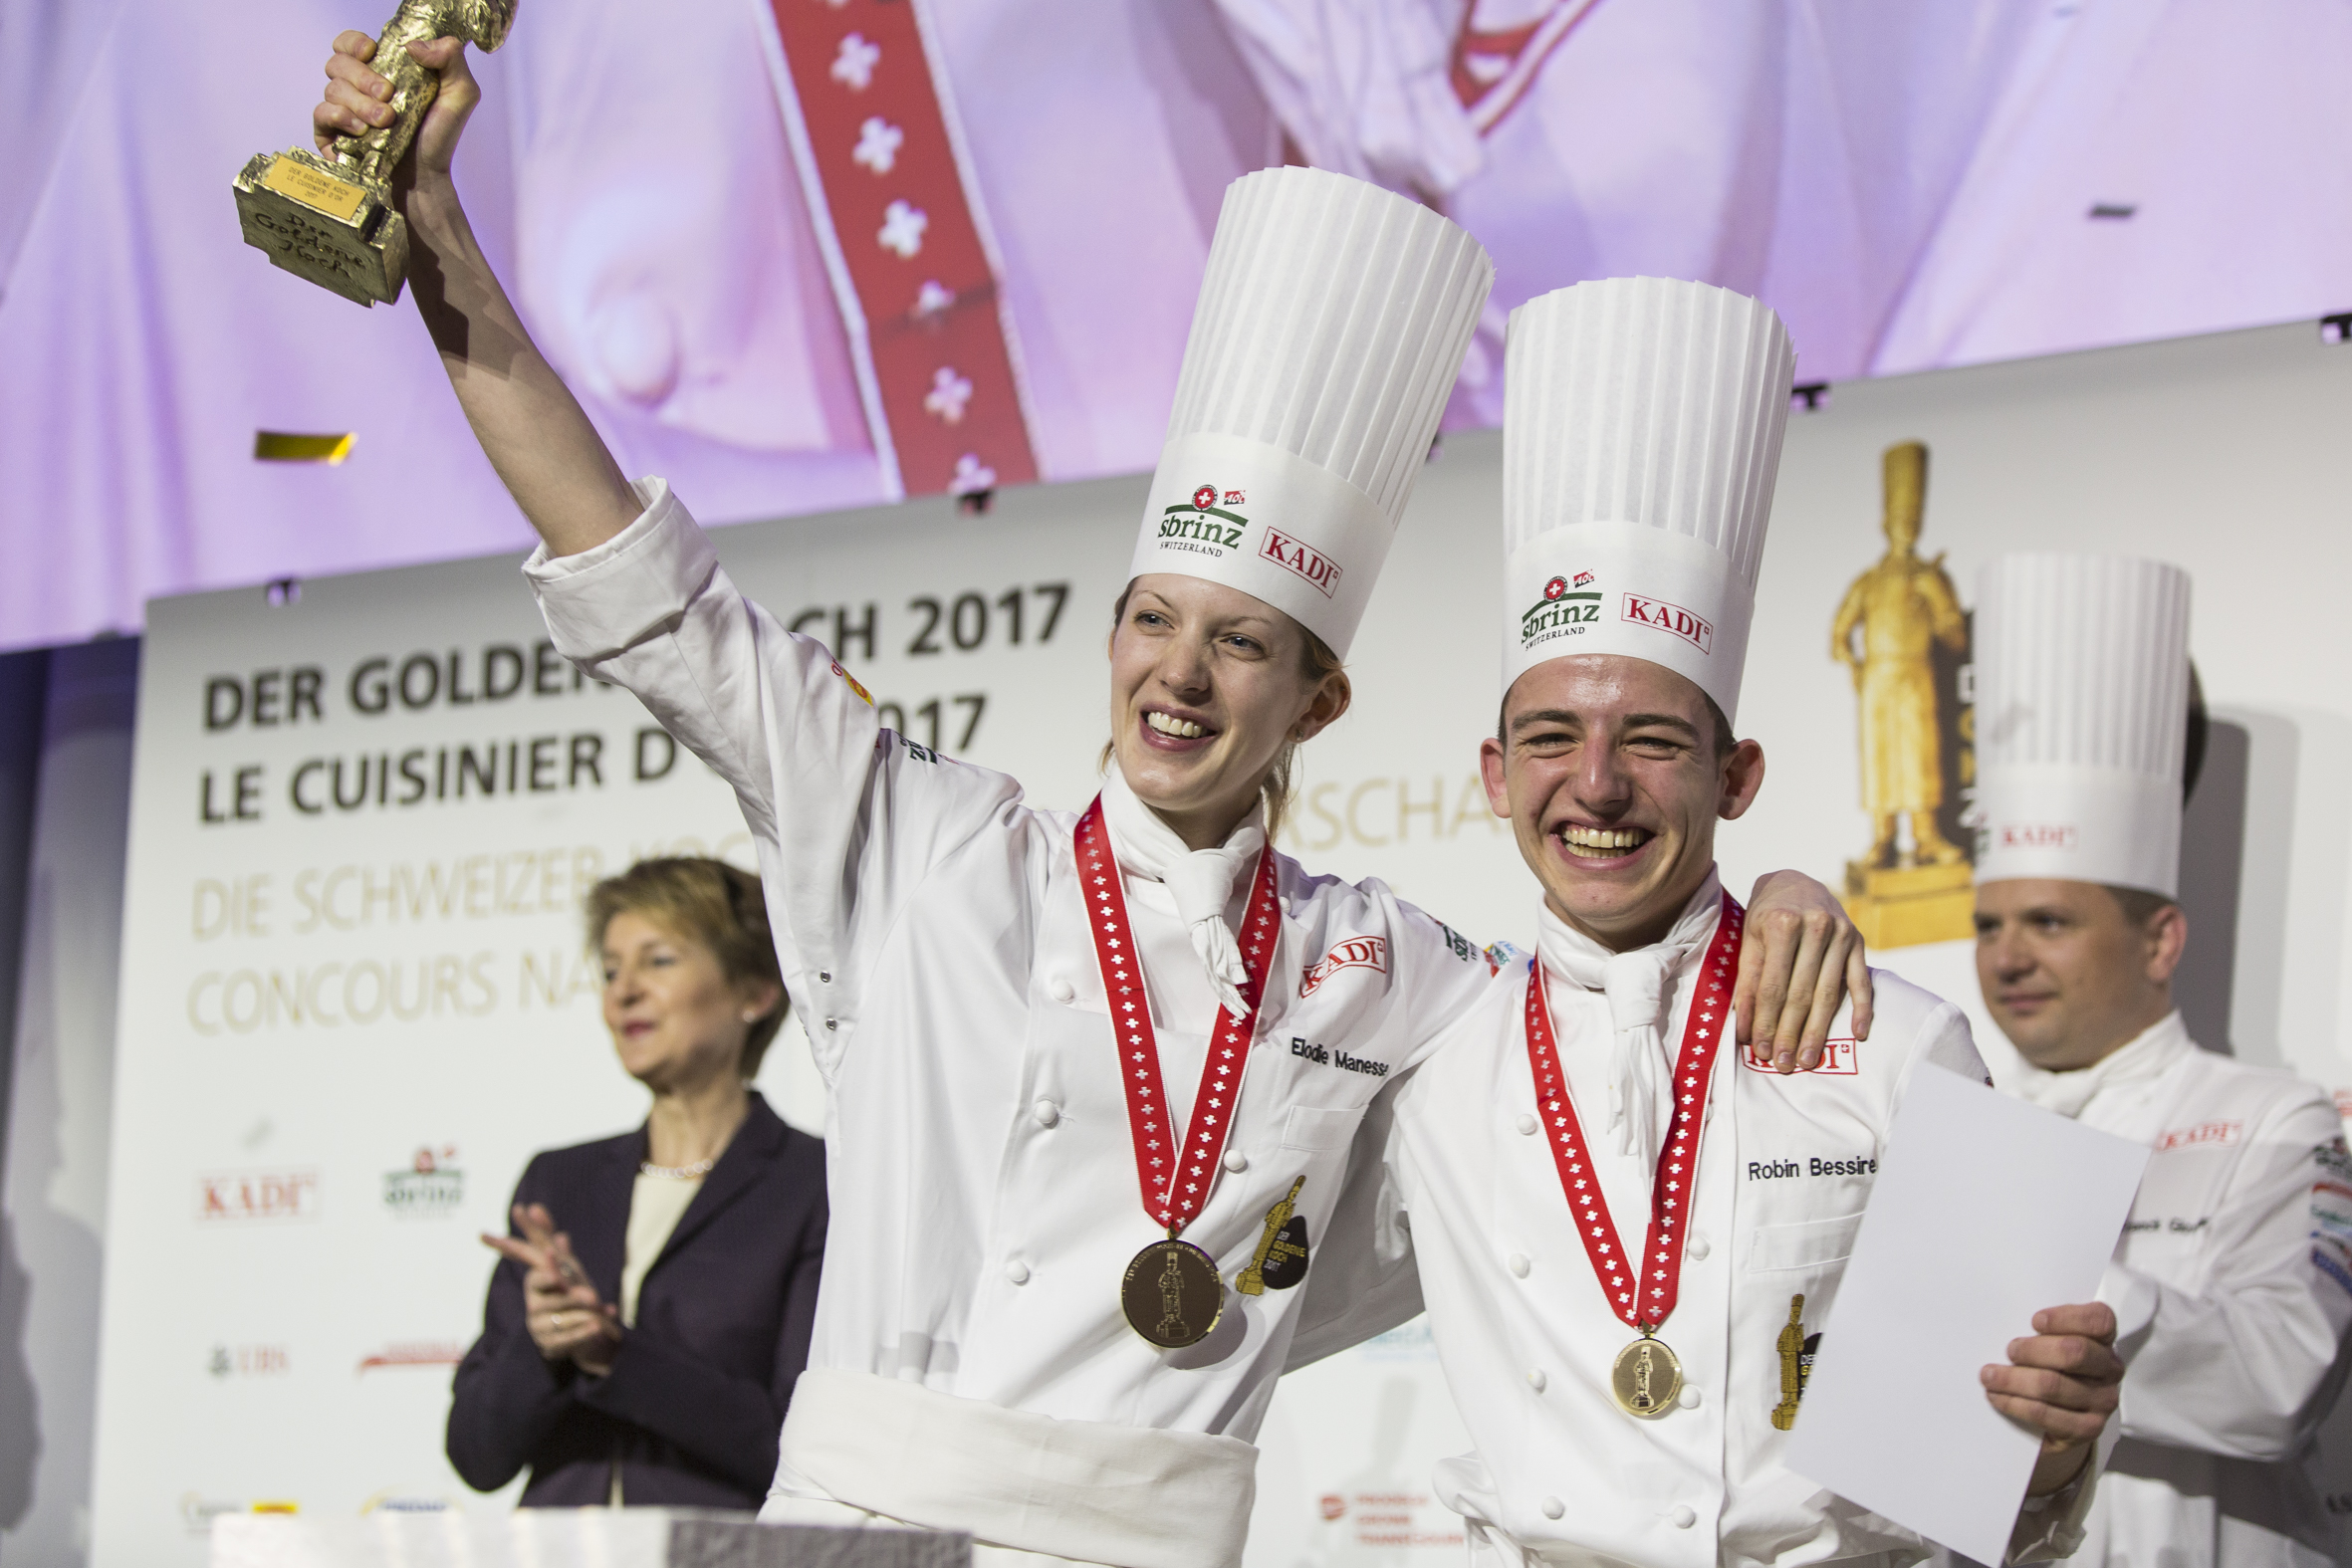 Küchenchefs Tv Now Chef Elodie Manesse Wins Swiss National Culinary Arts Competition